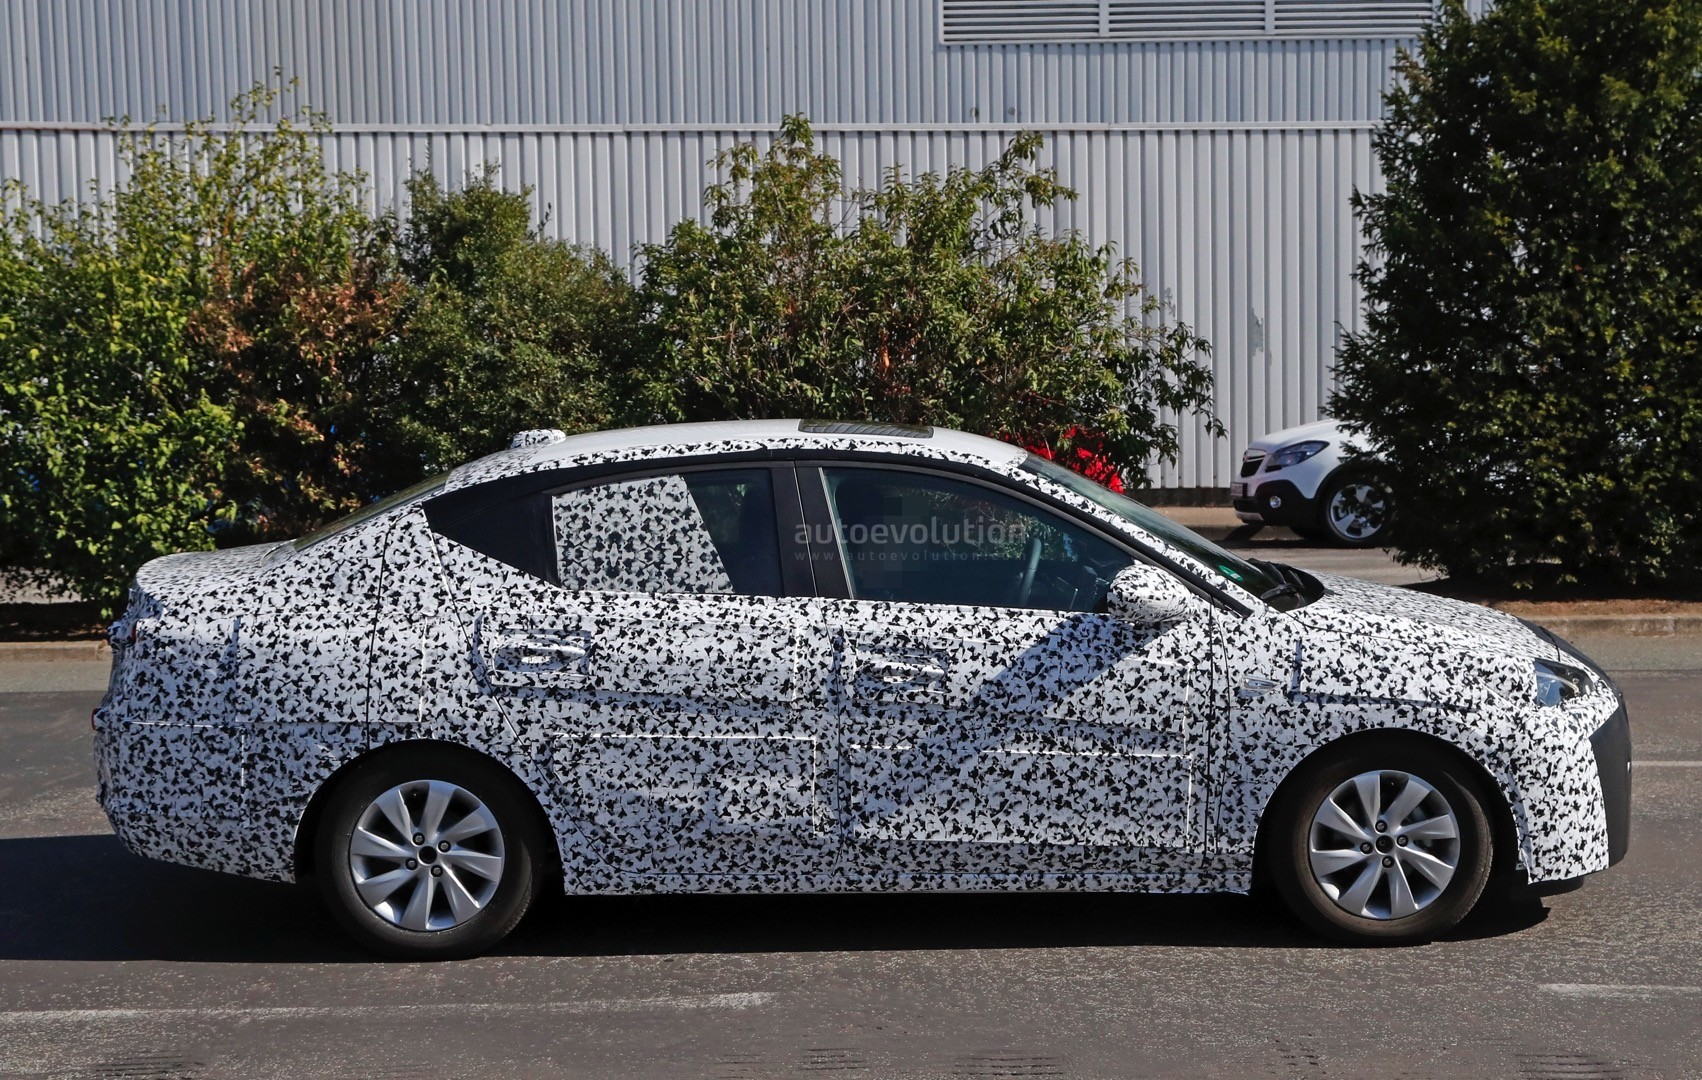 2019- [Opel] Corsa F [P2JO] - Page 3 2018-opel-corsa-f-sedan-spied-to-be-launched-in-china-as-2018-chevrolet-sail_6